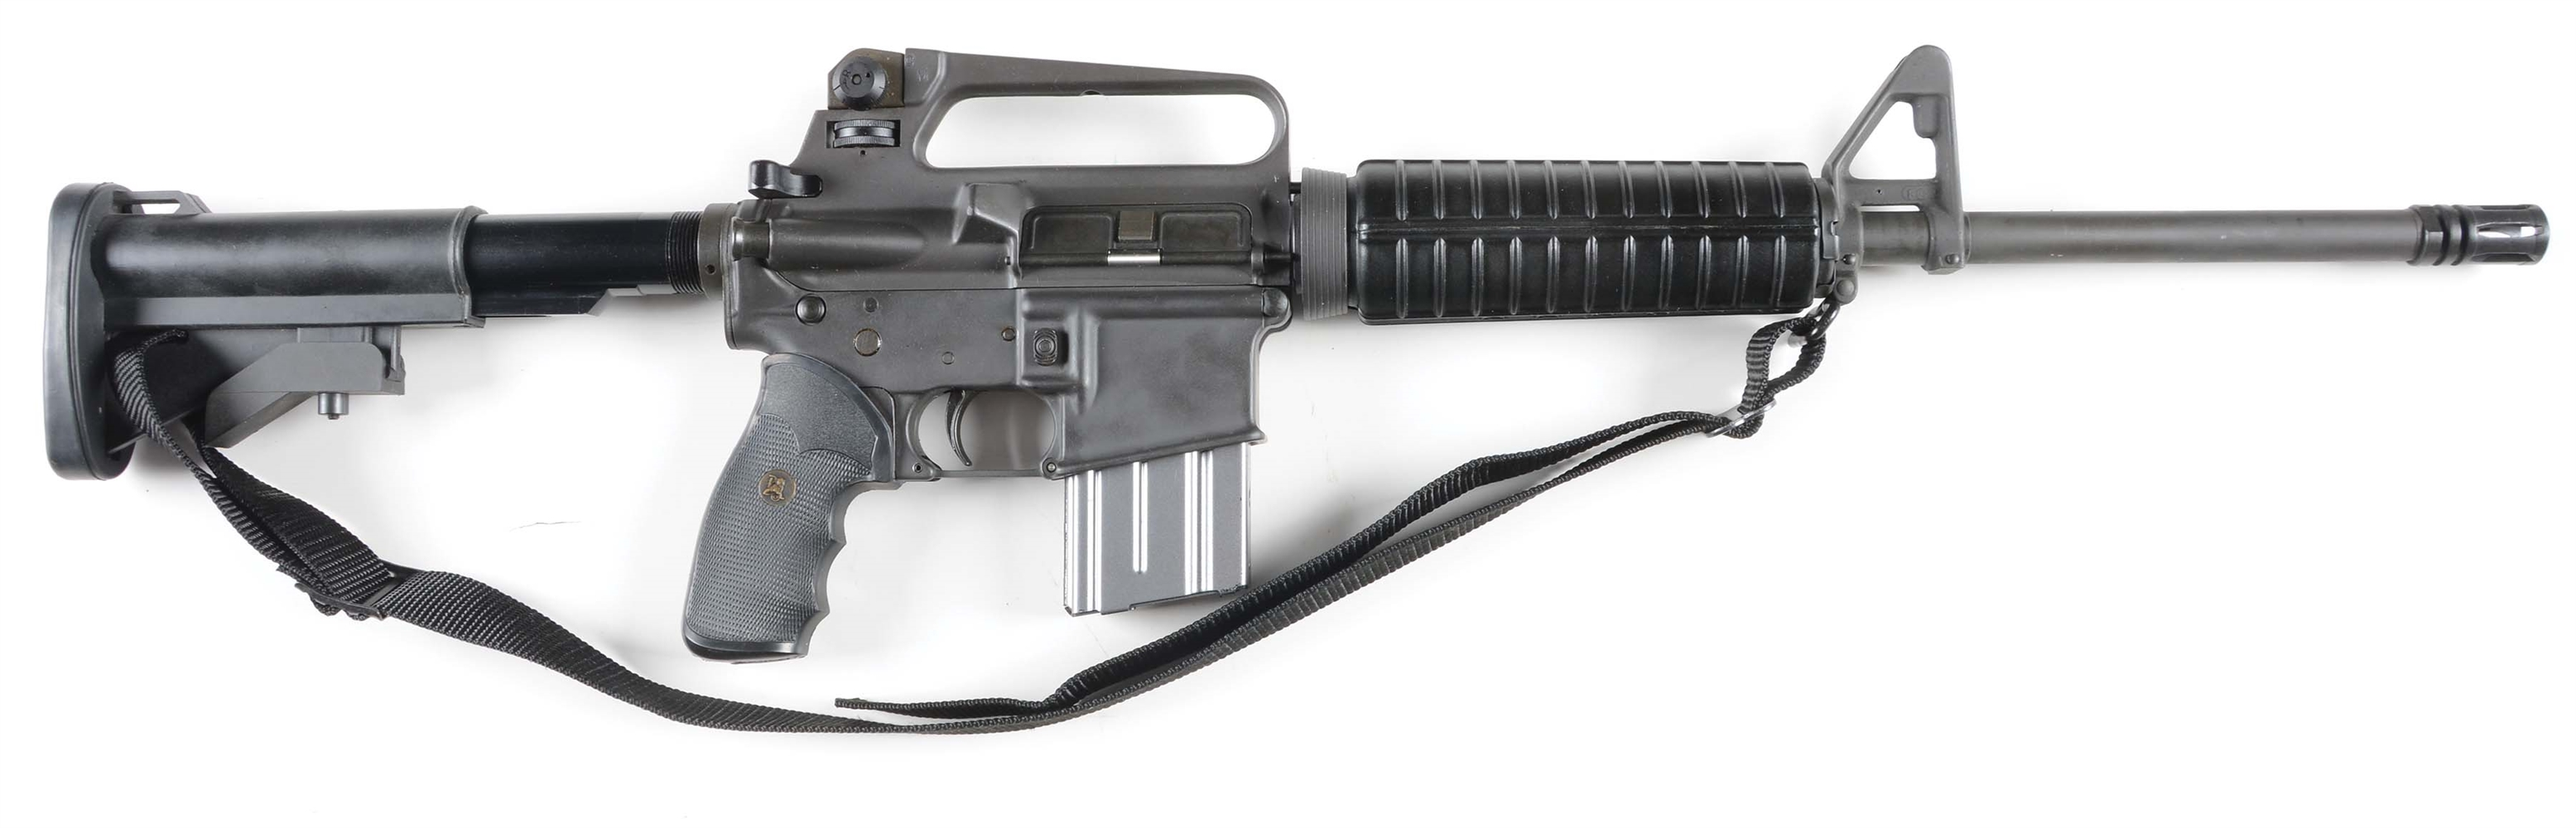 (M) Colt Sporter Lightweight (AR-15) Semi-Automatic Rifle.